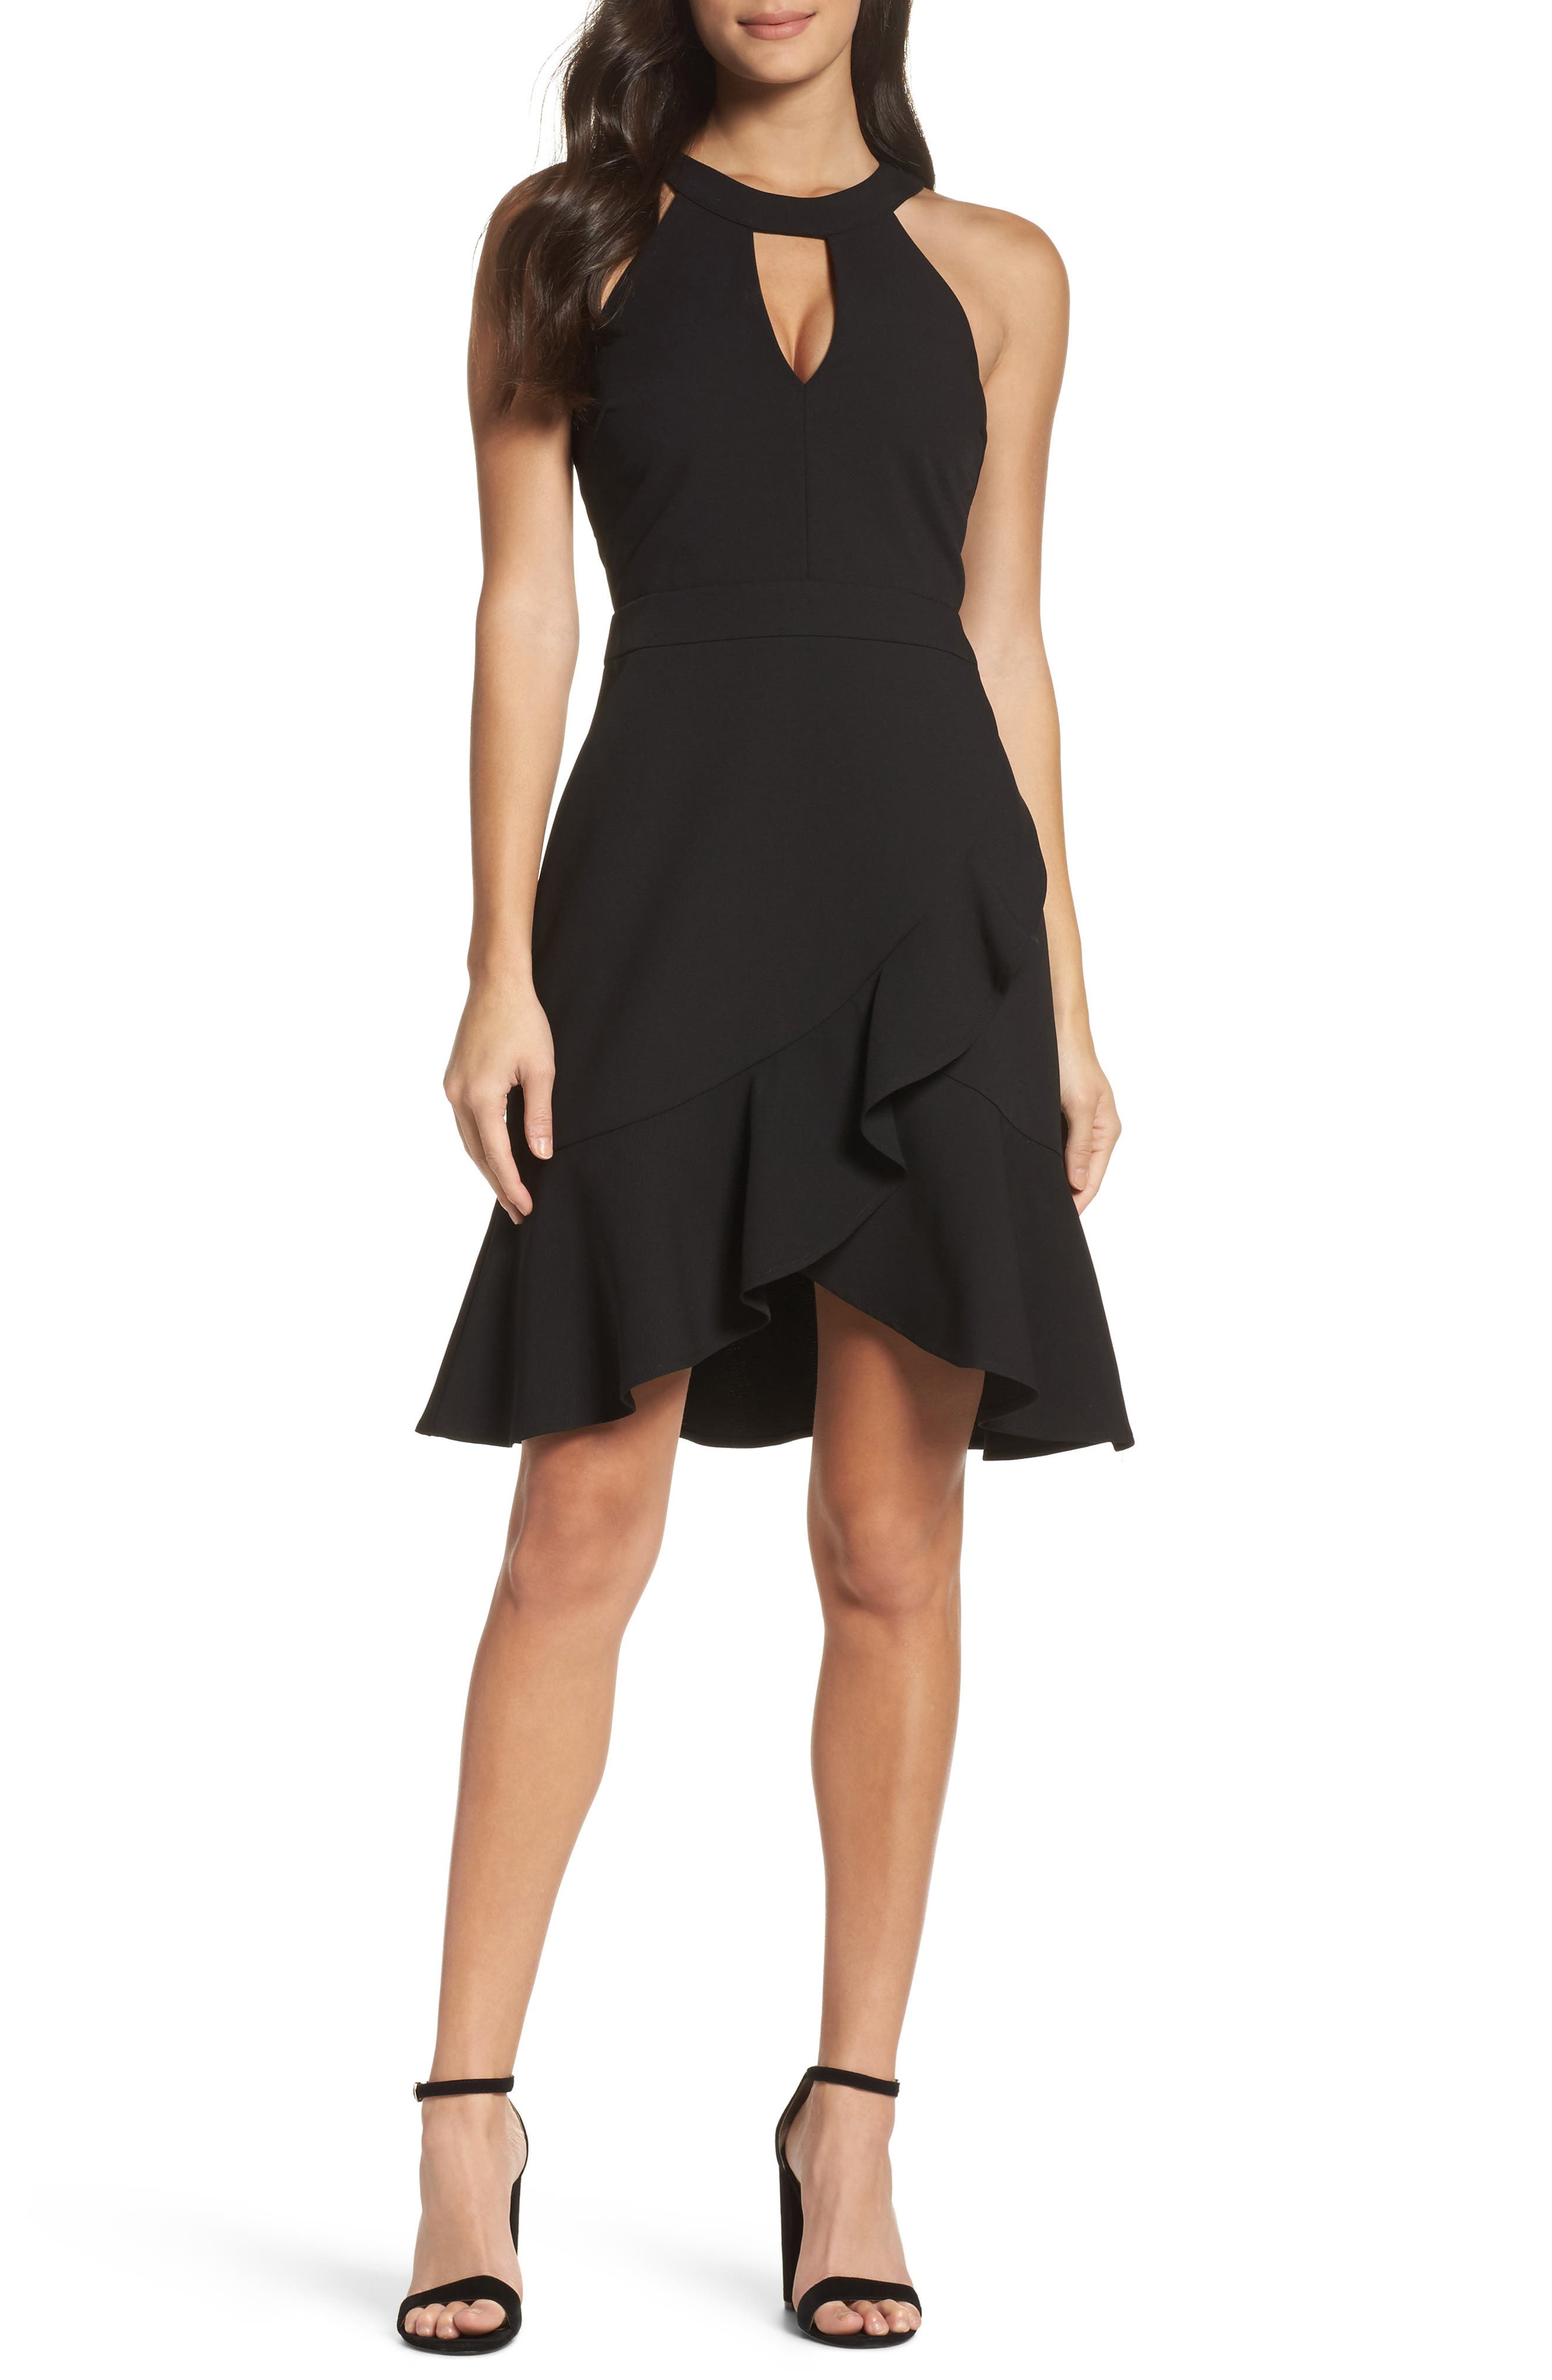 Adelyn Rae Kasi Ruffle Fit & Flare Dress